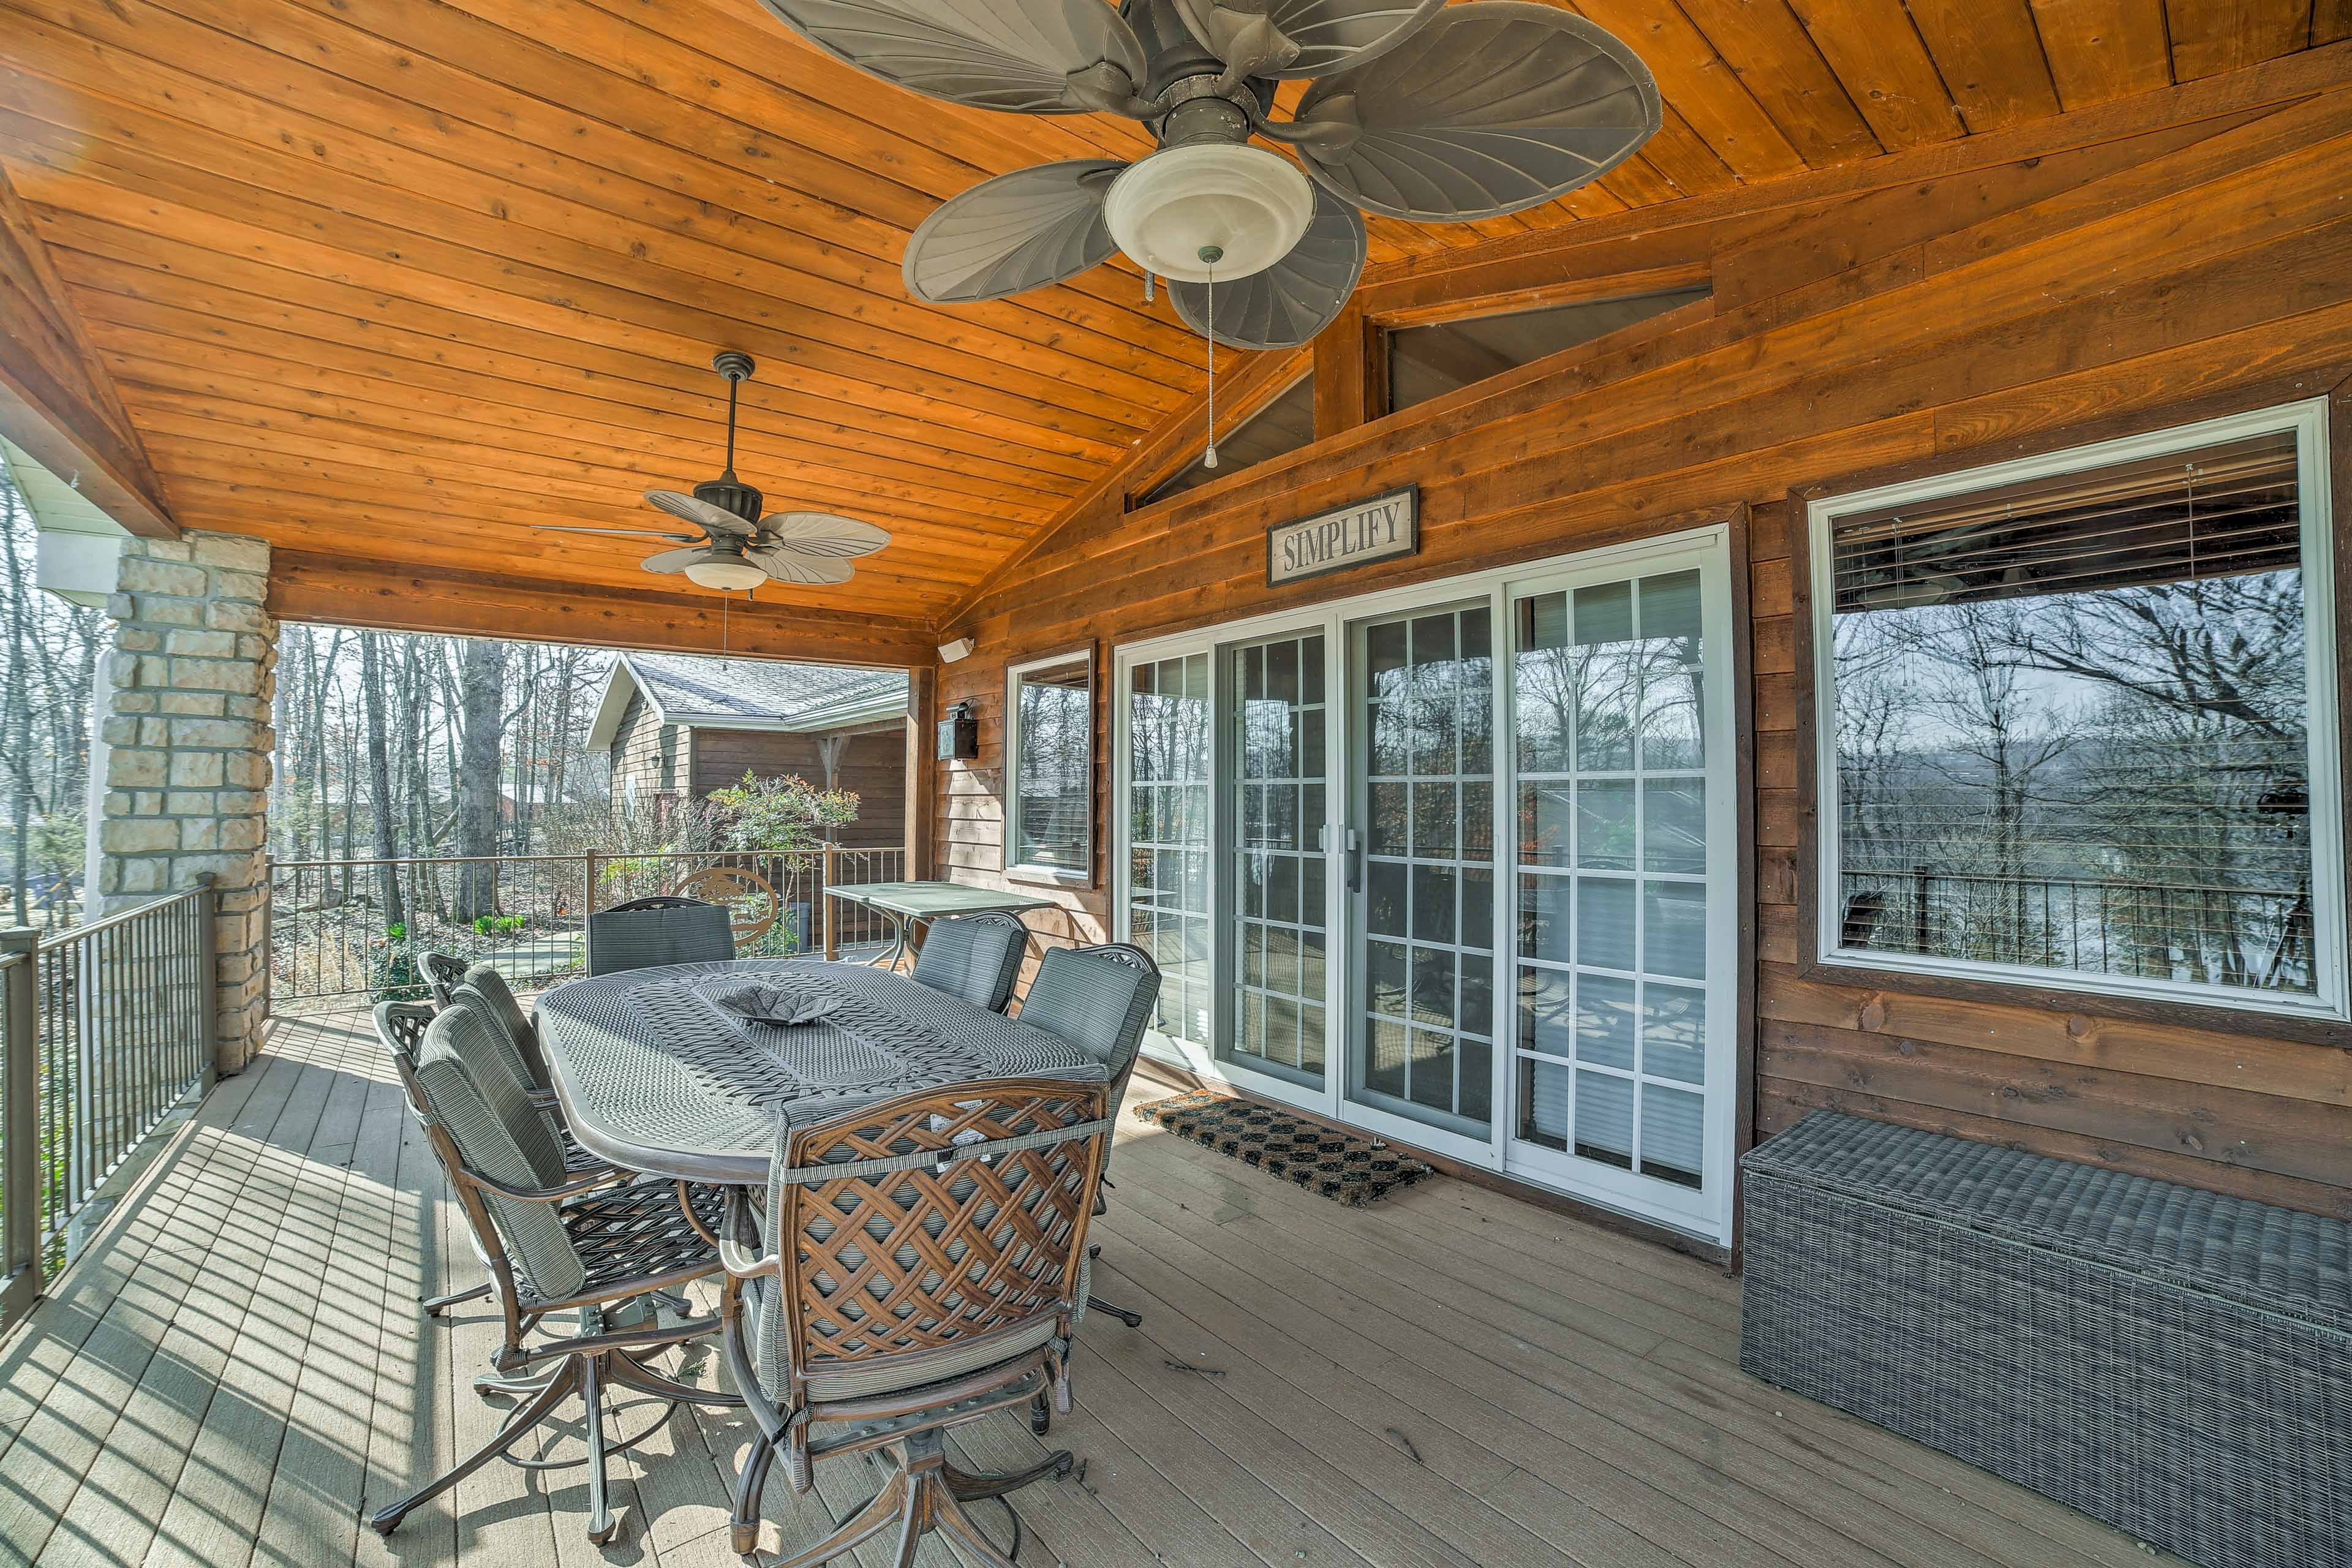 Eat dinner together on warm days at the outdoor patio with views of the lake.